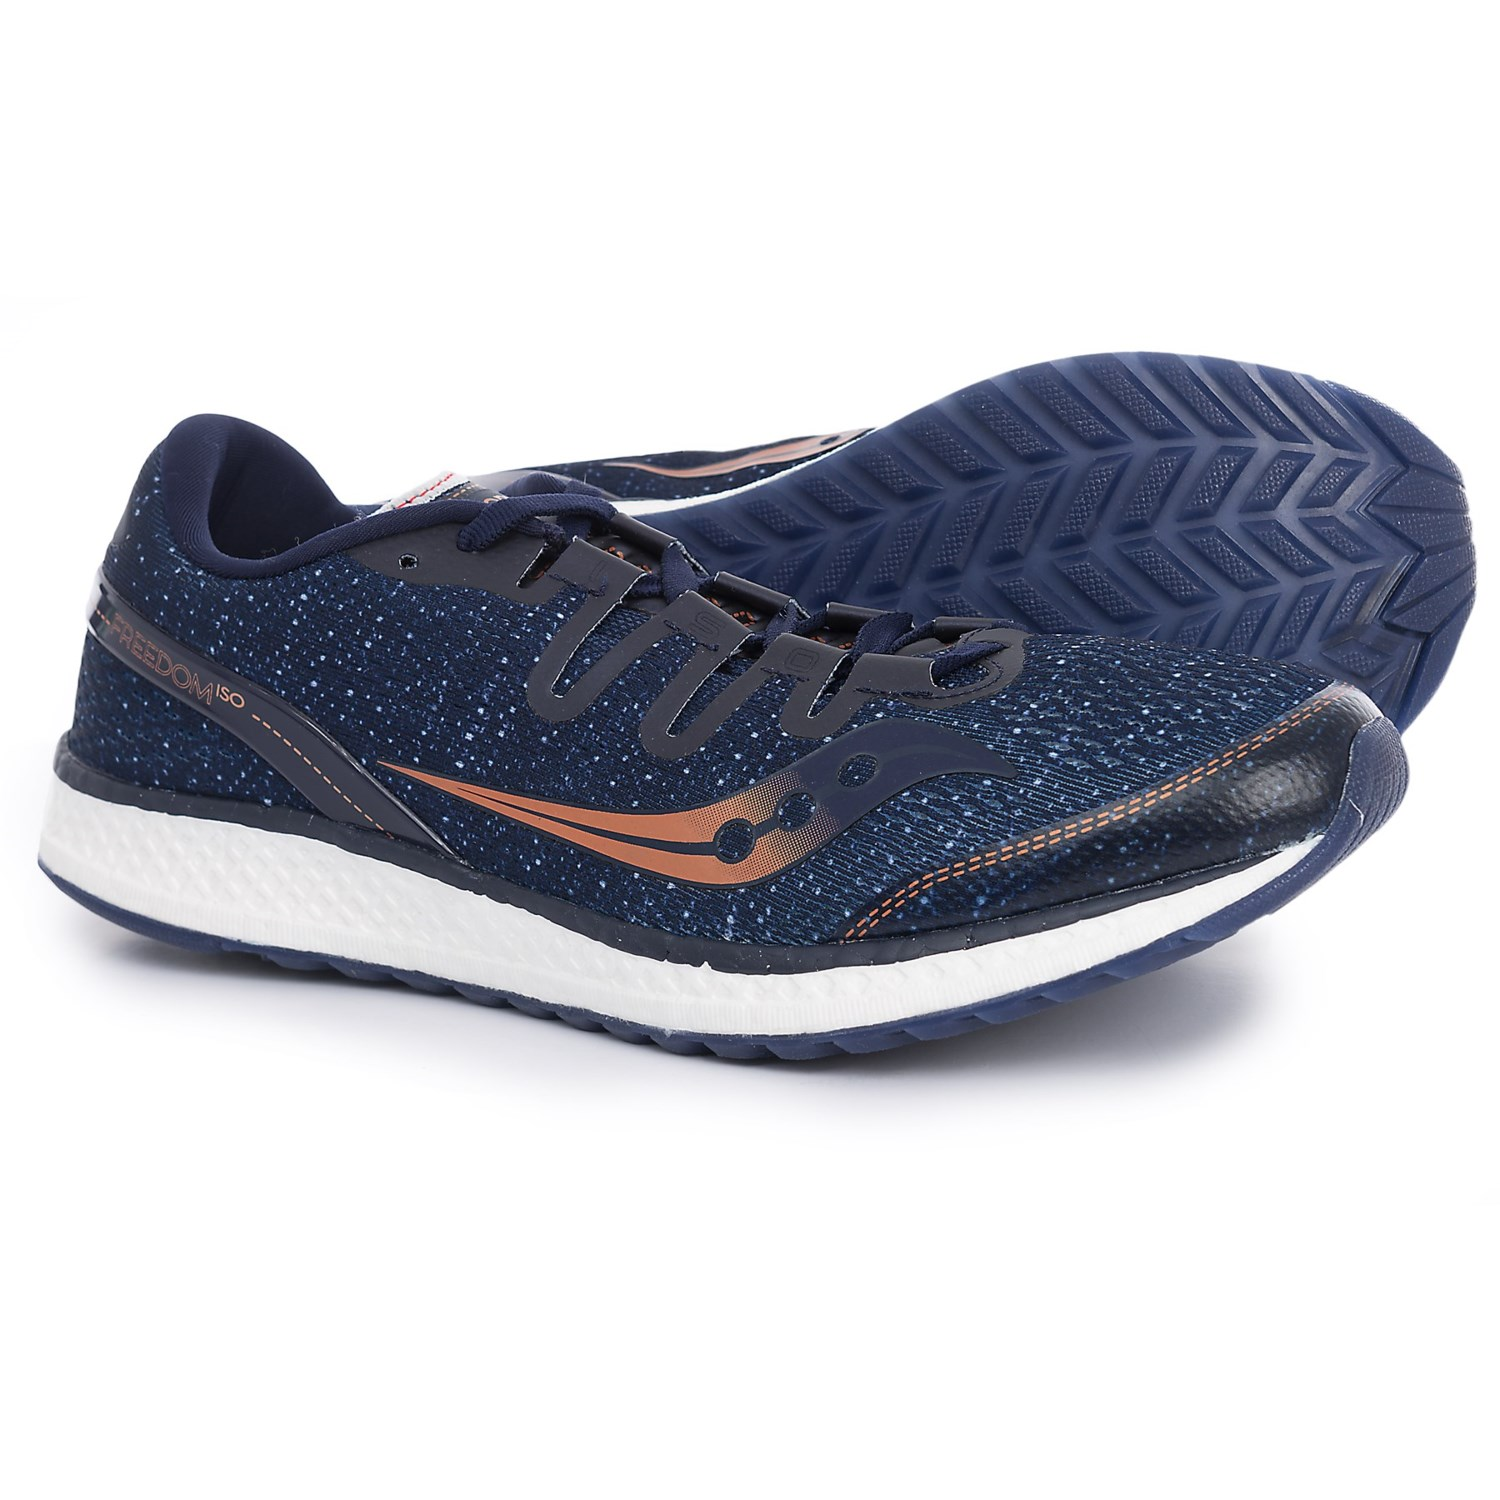 decd8f29 Saucony Freedom ISO Running Shoes (For Men)